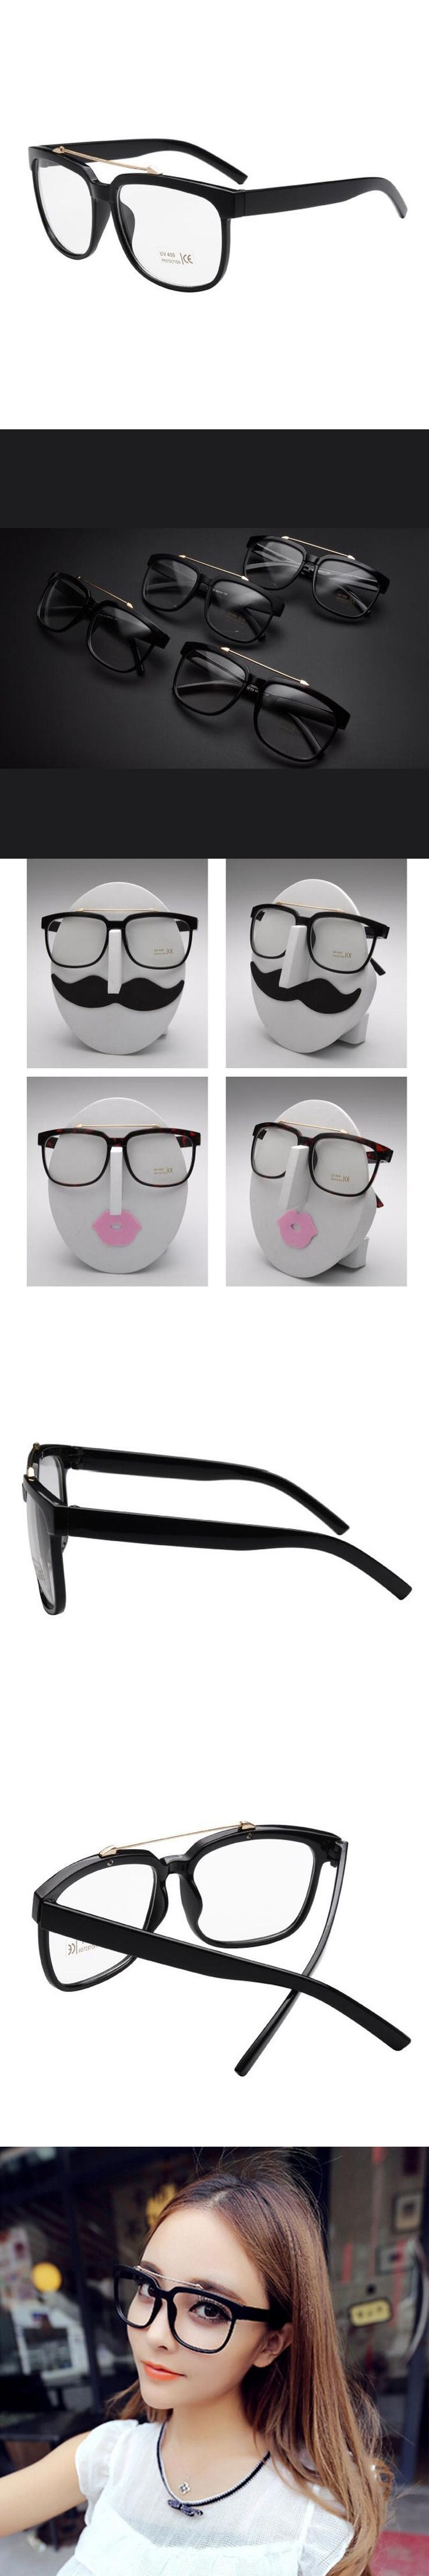 2017 Fashion Brand Designer Eyeglasses frames retro optical frame glasses Men/Women Metal arrow closed spectacle frame glasses